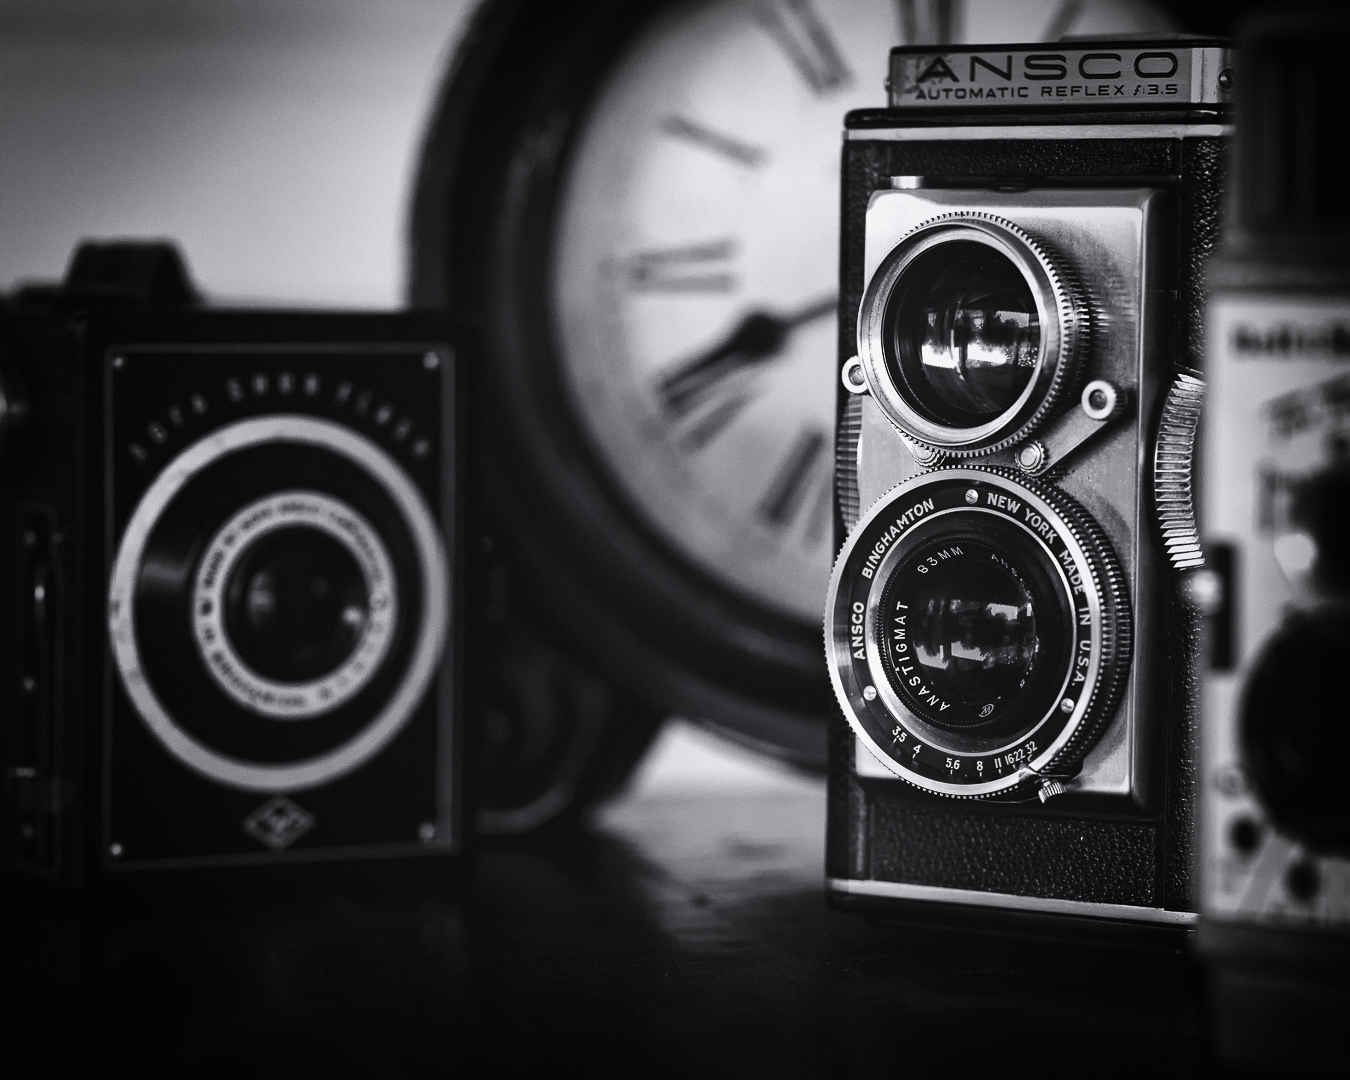 Snap Back In Time-0001-Brian Suman Photography.jpg